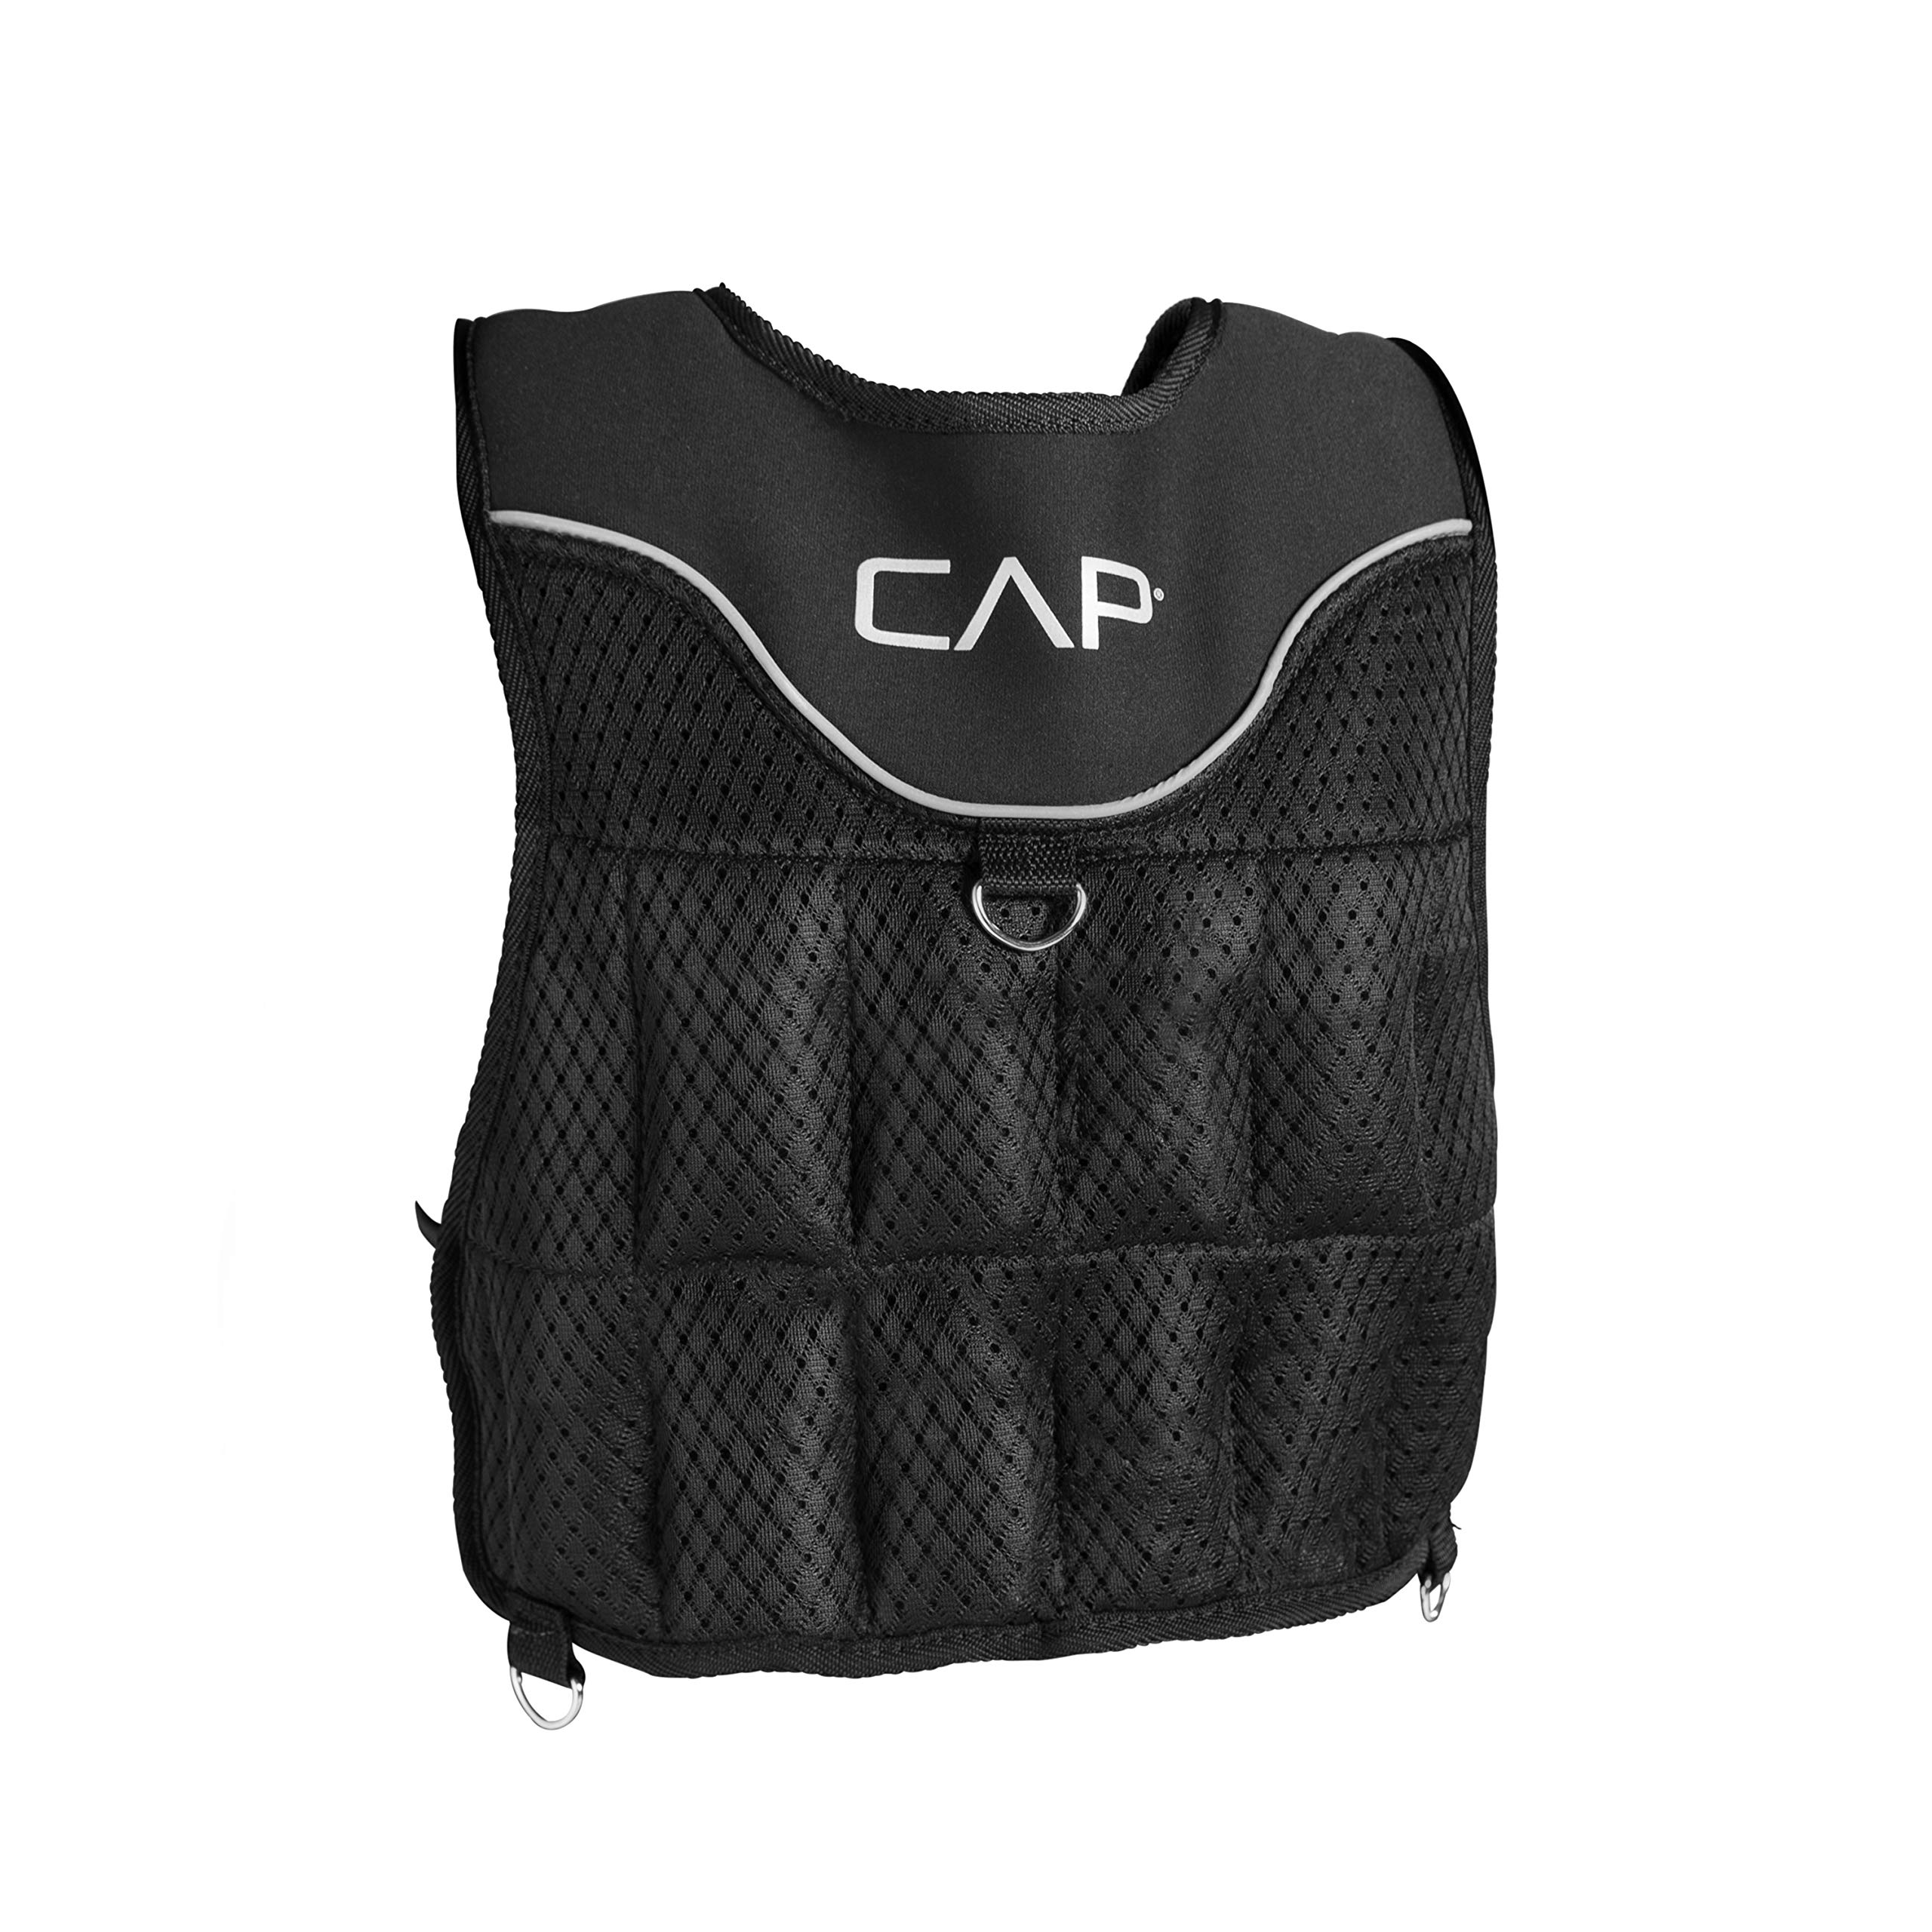 CAP Barbell (HHWV-CB020C) Adjustable Weighted Vest, 20-Pound